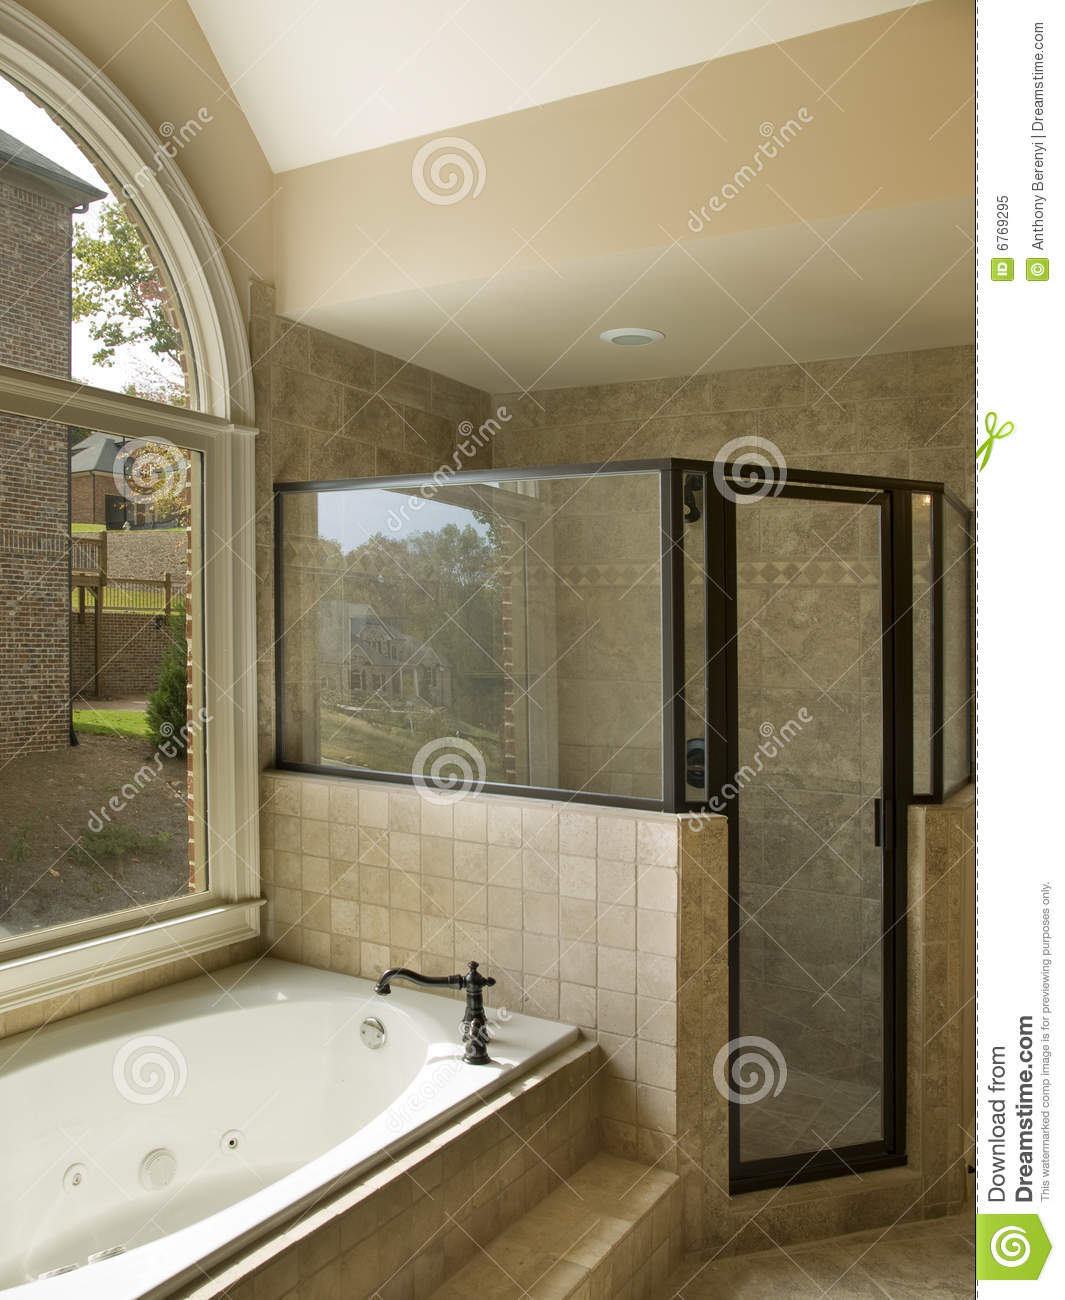 Baños Elegantes Con Tina:Bathroom with Shower and Jacuzzi